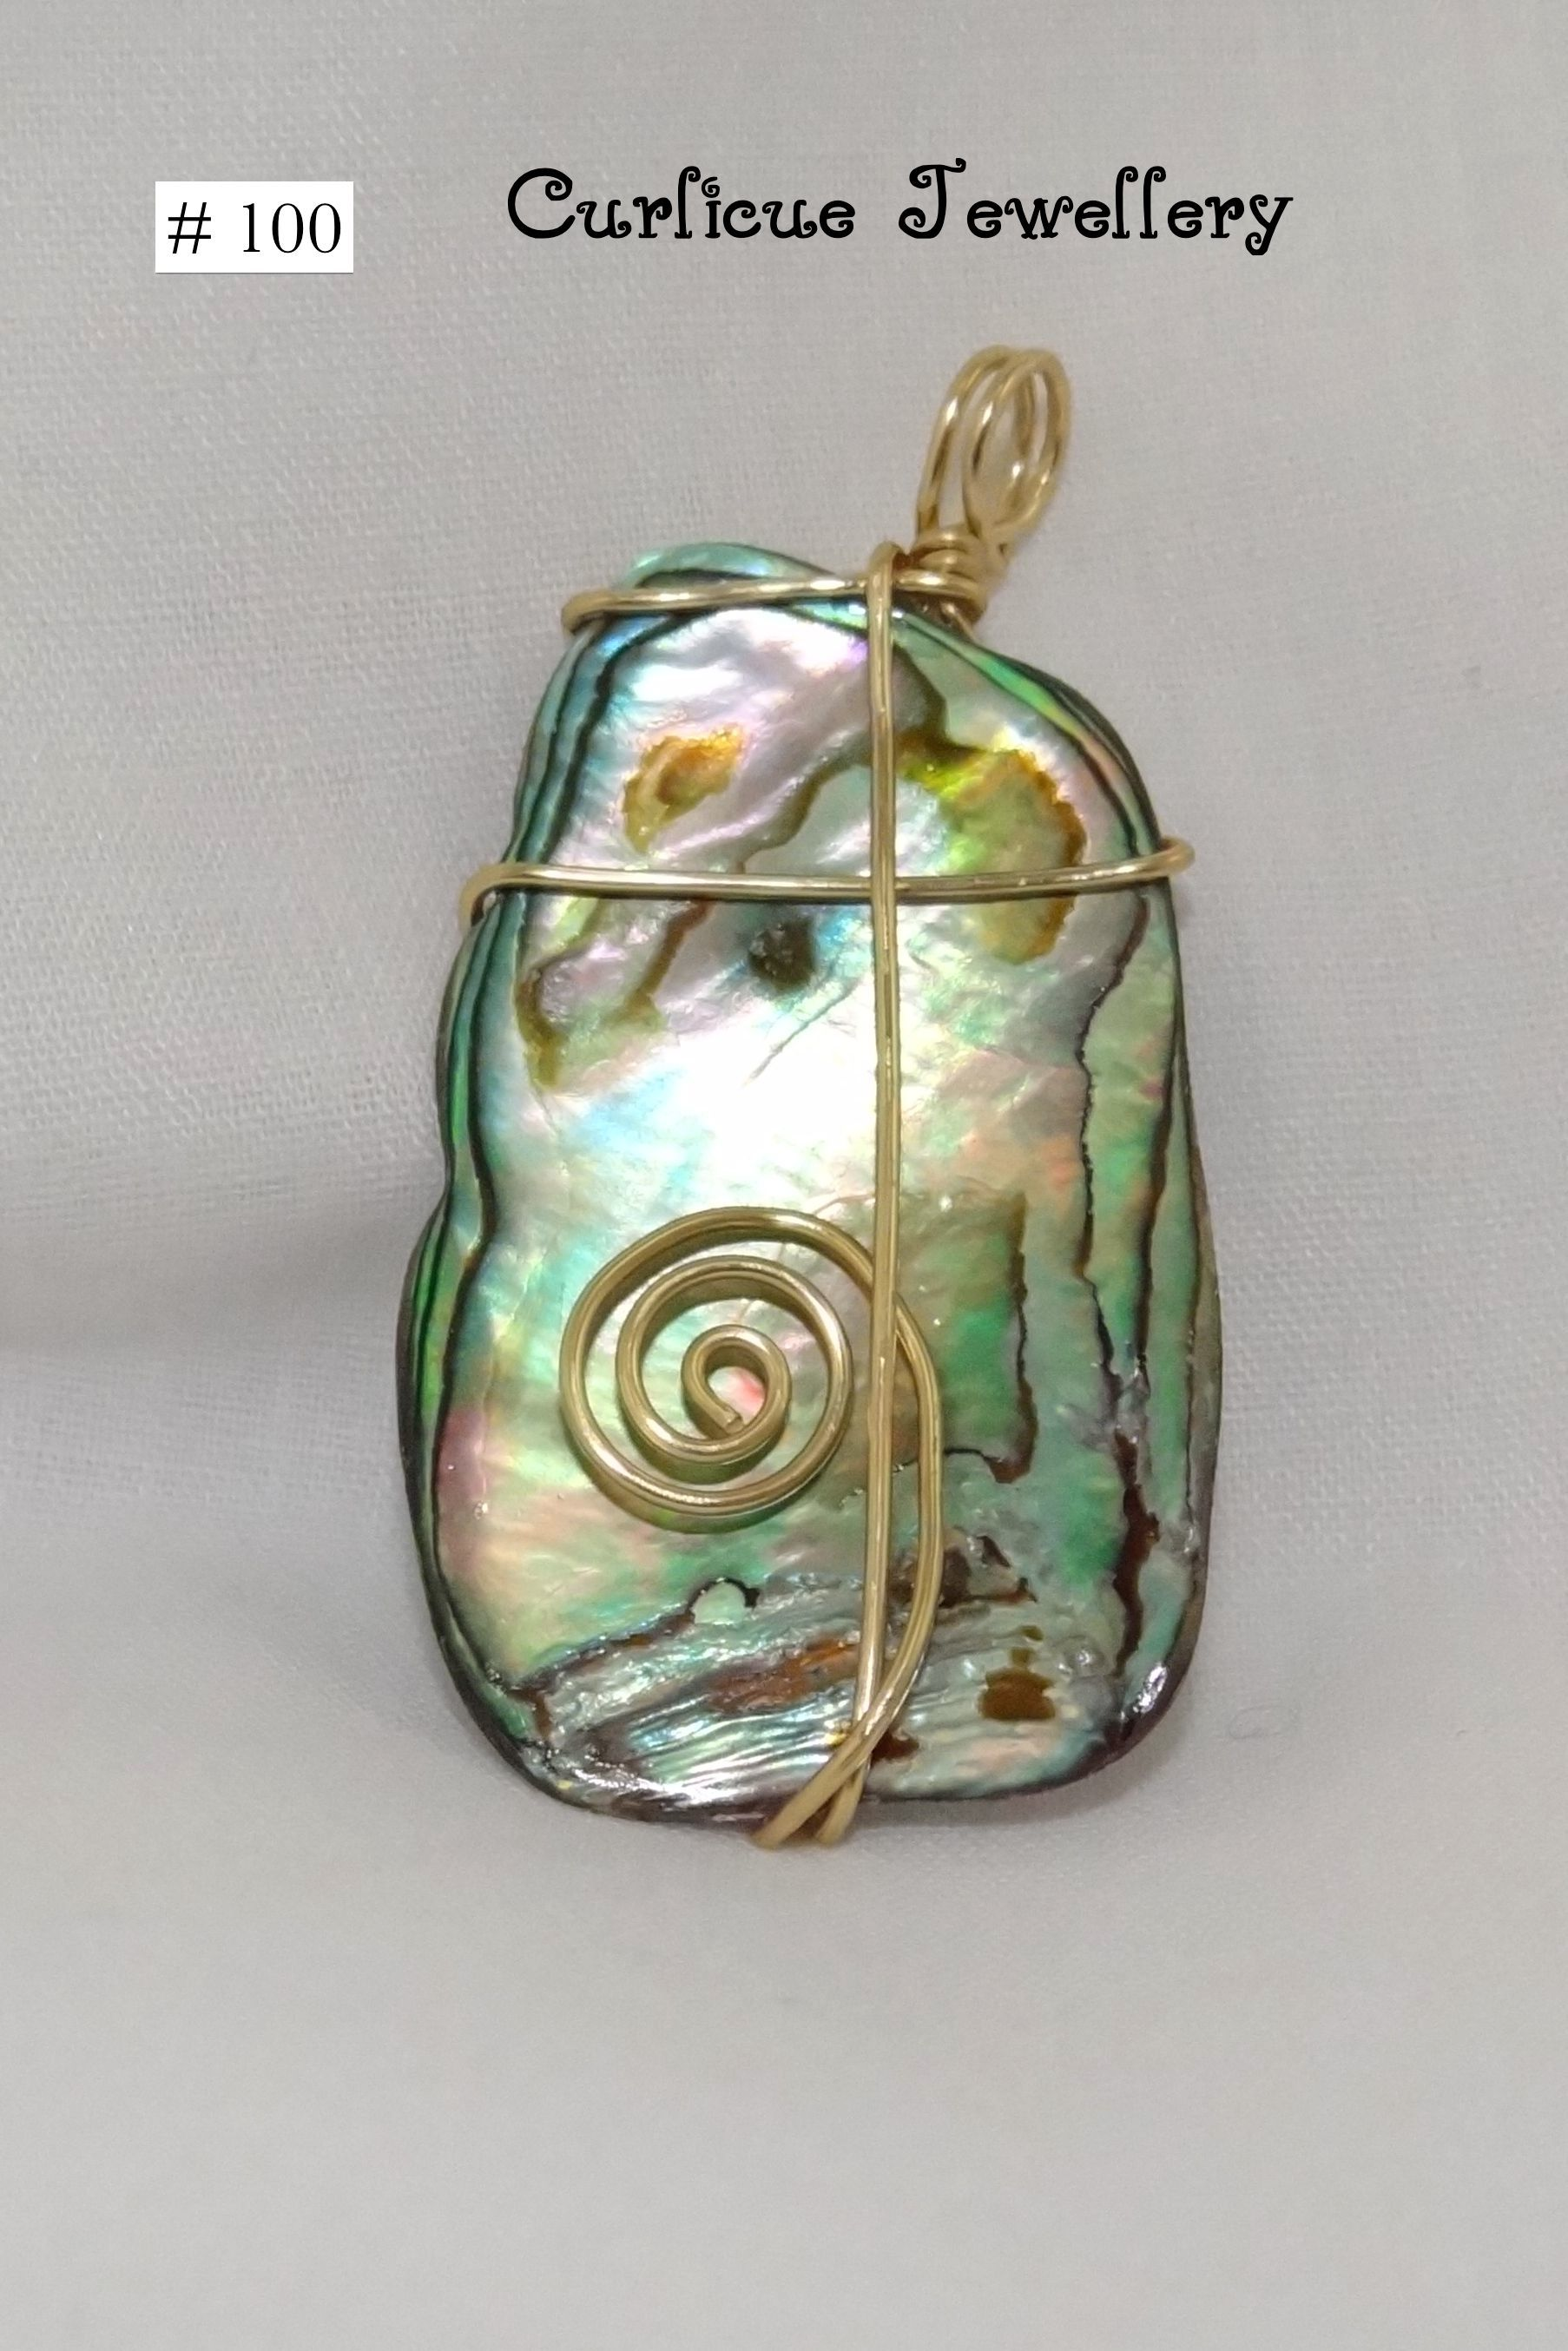 paua pearl tuay mop listing fullxfull diamond geometric jewelry brown rainbow statement genuine shape silver sterling shell il highlights pendant designer